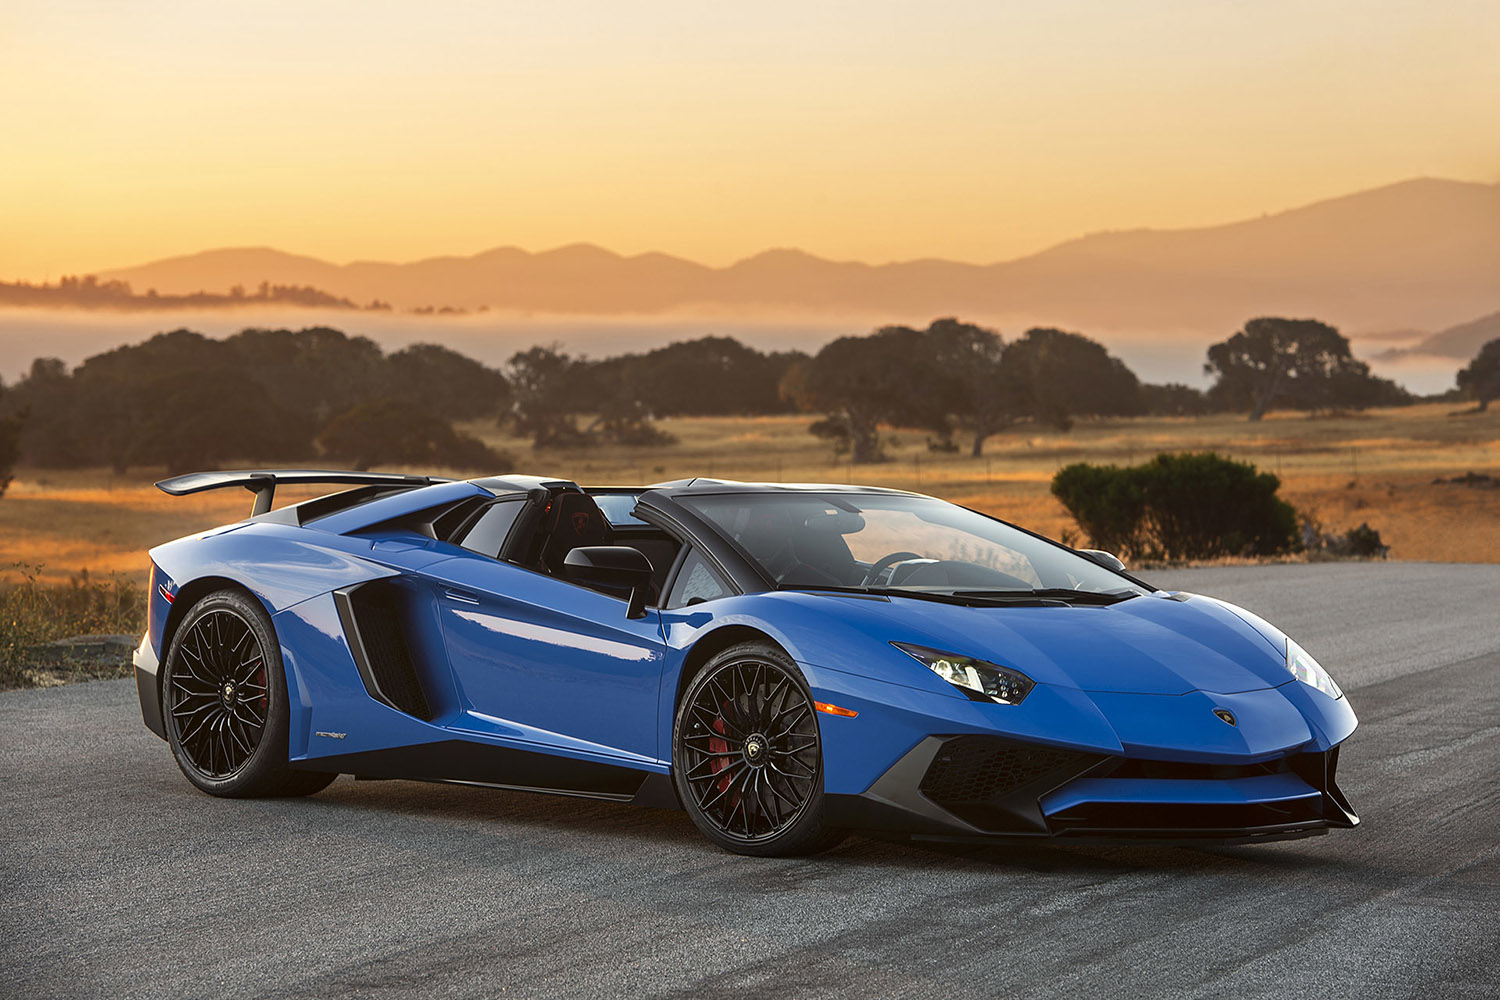 Lamborghini Aventador Lp750 4 Roadster Photos Hypebeast HD Wallpapers Download free images and photos [musssic.tk]